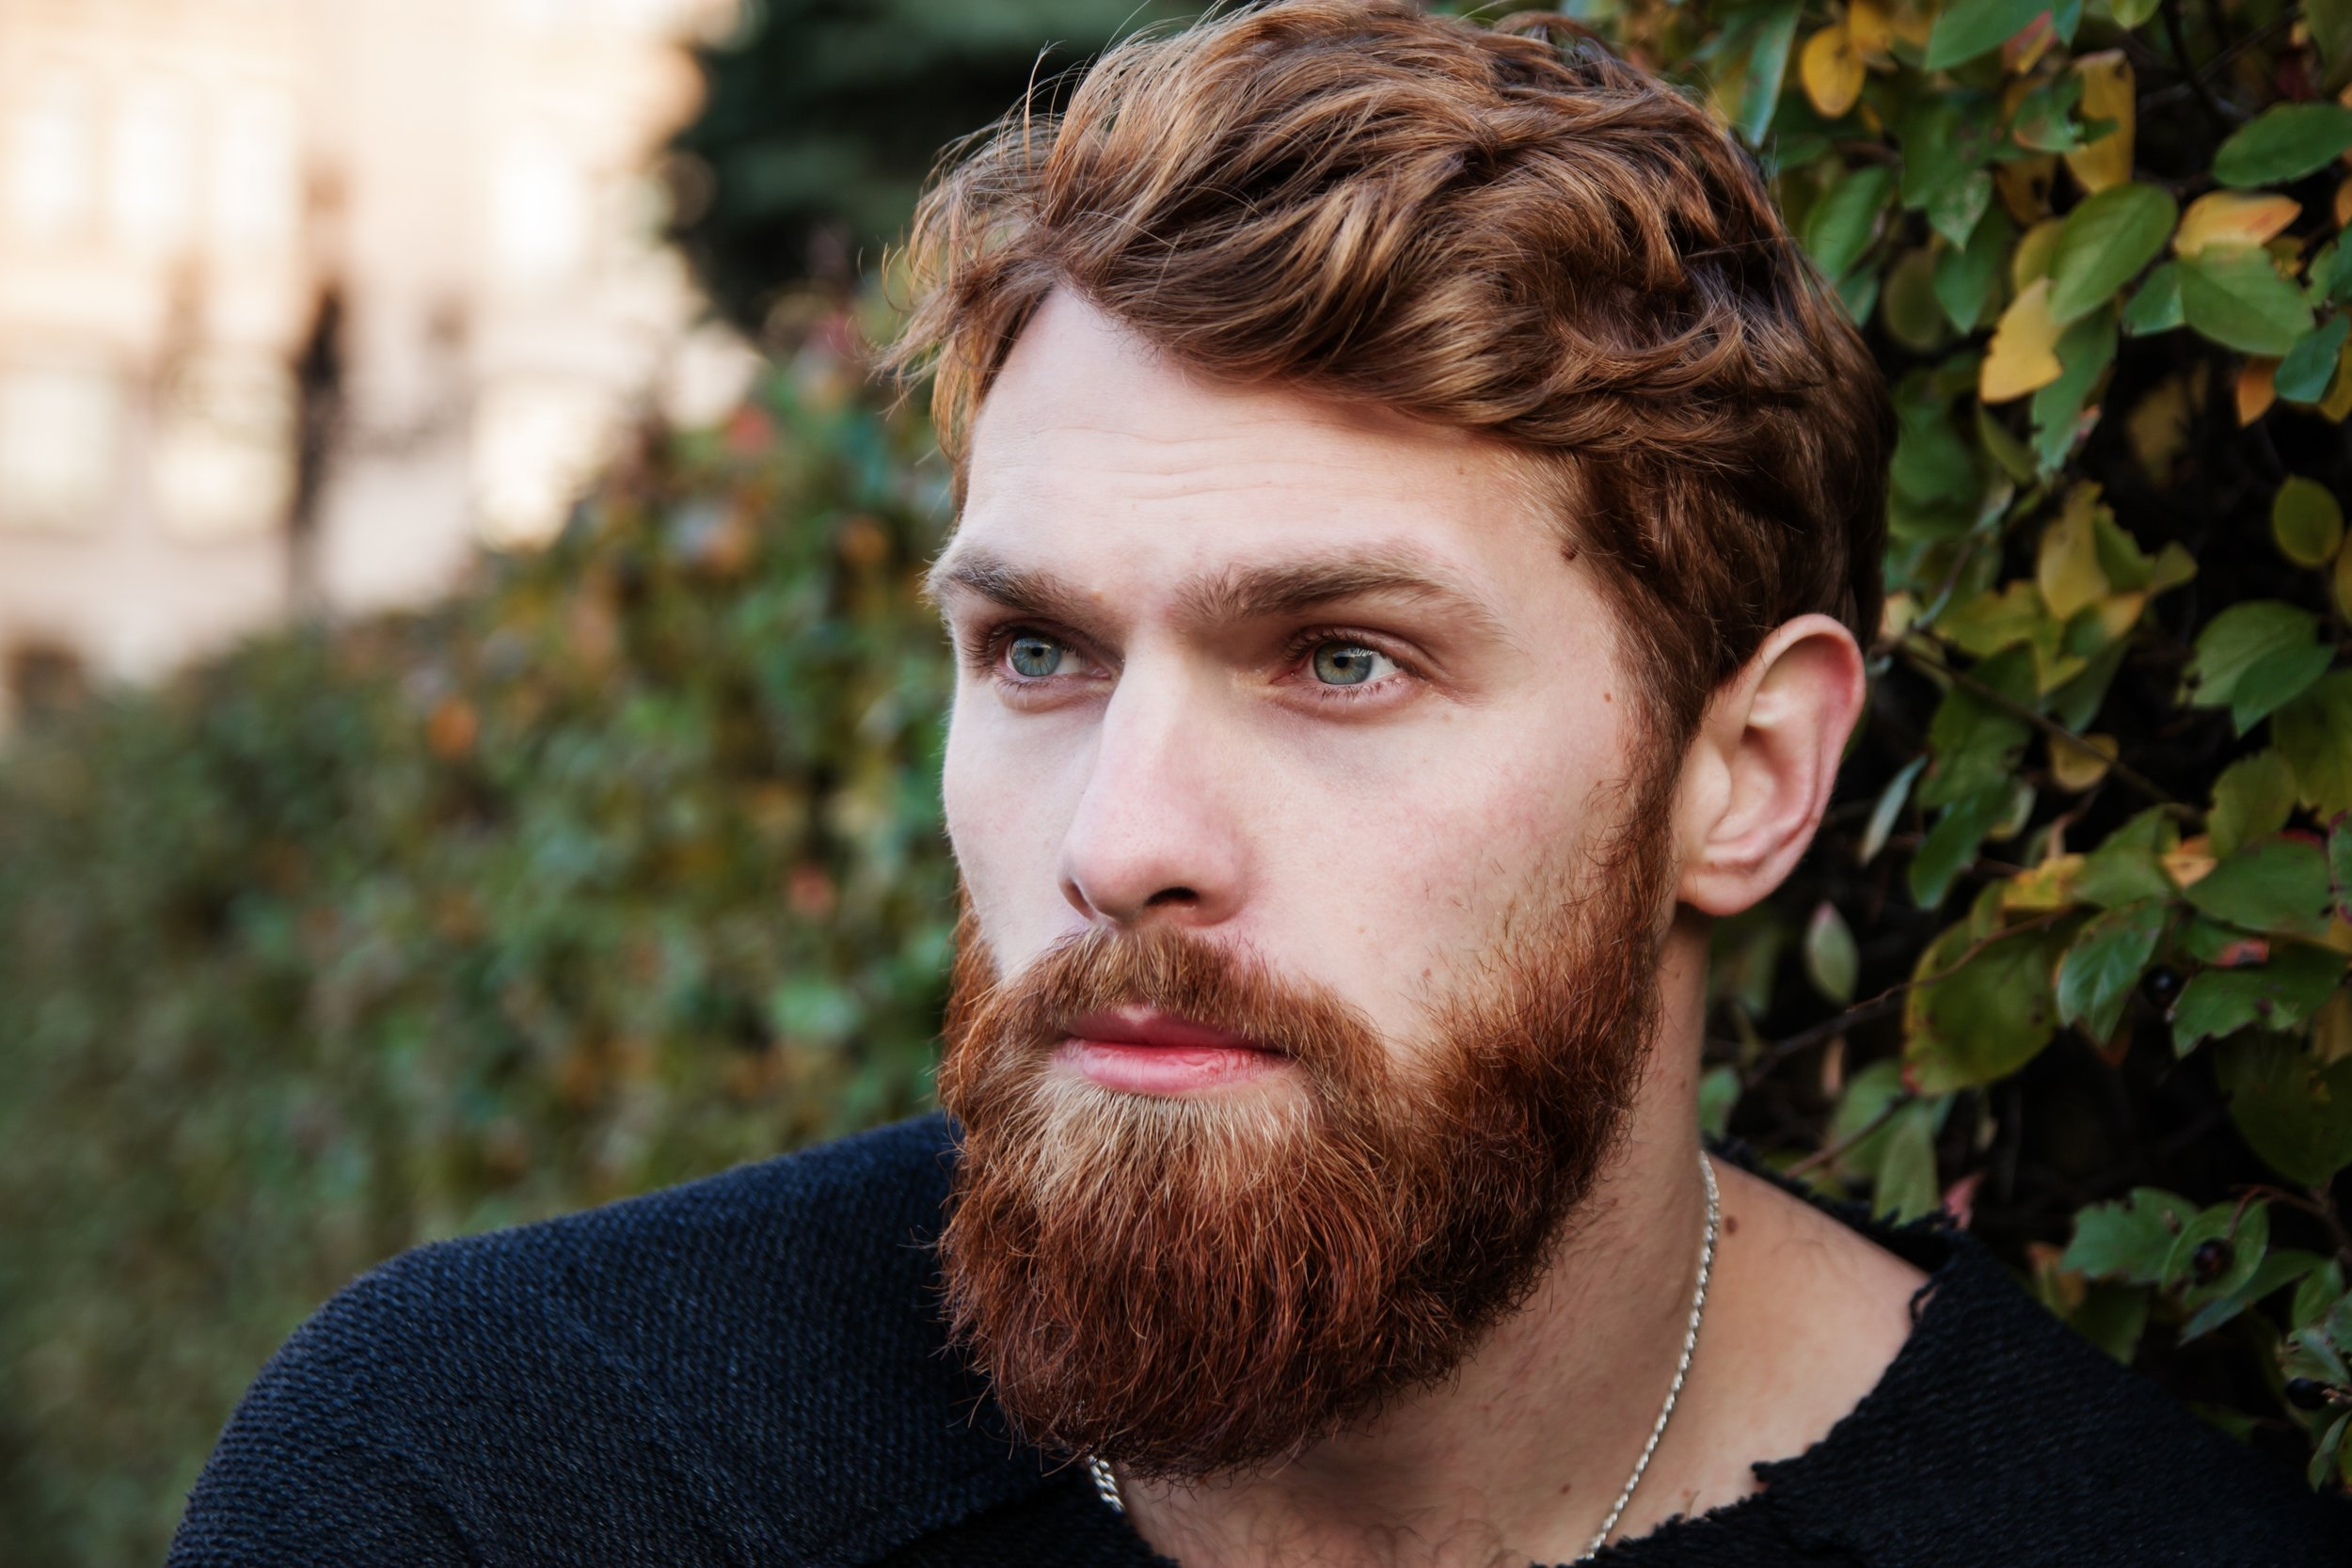 adult-attractive-beard-247885.jpg